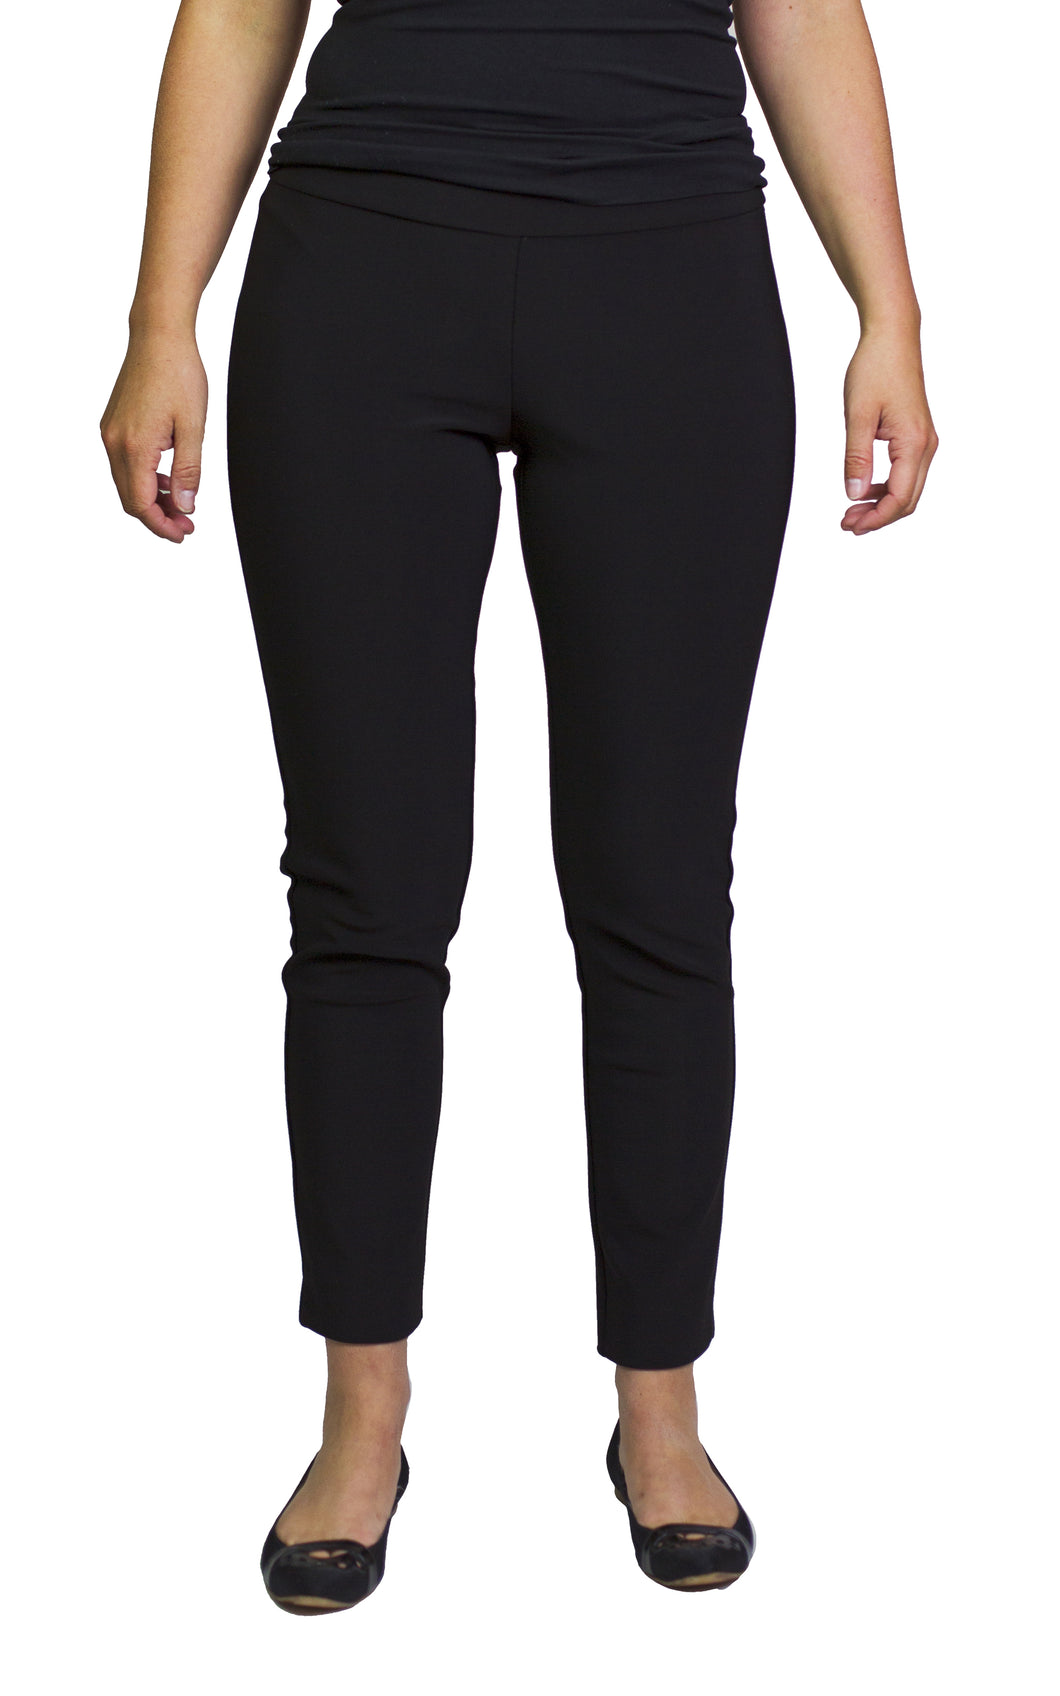 microfiber ankle pants from krazy larry